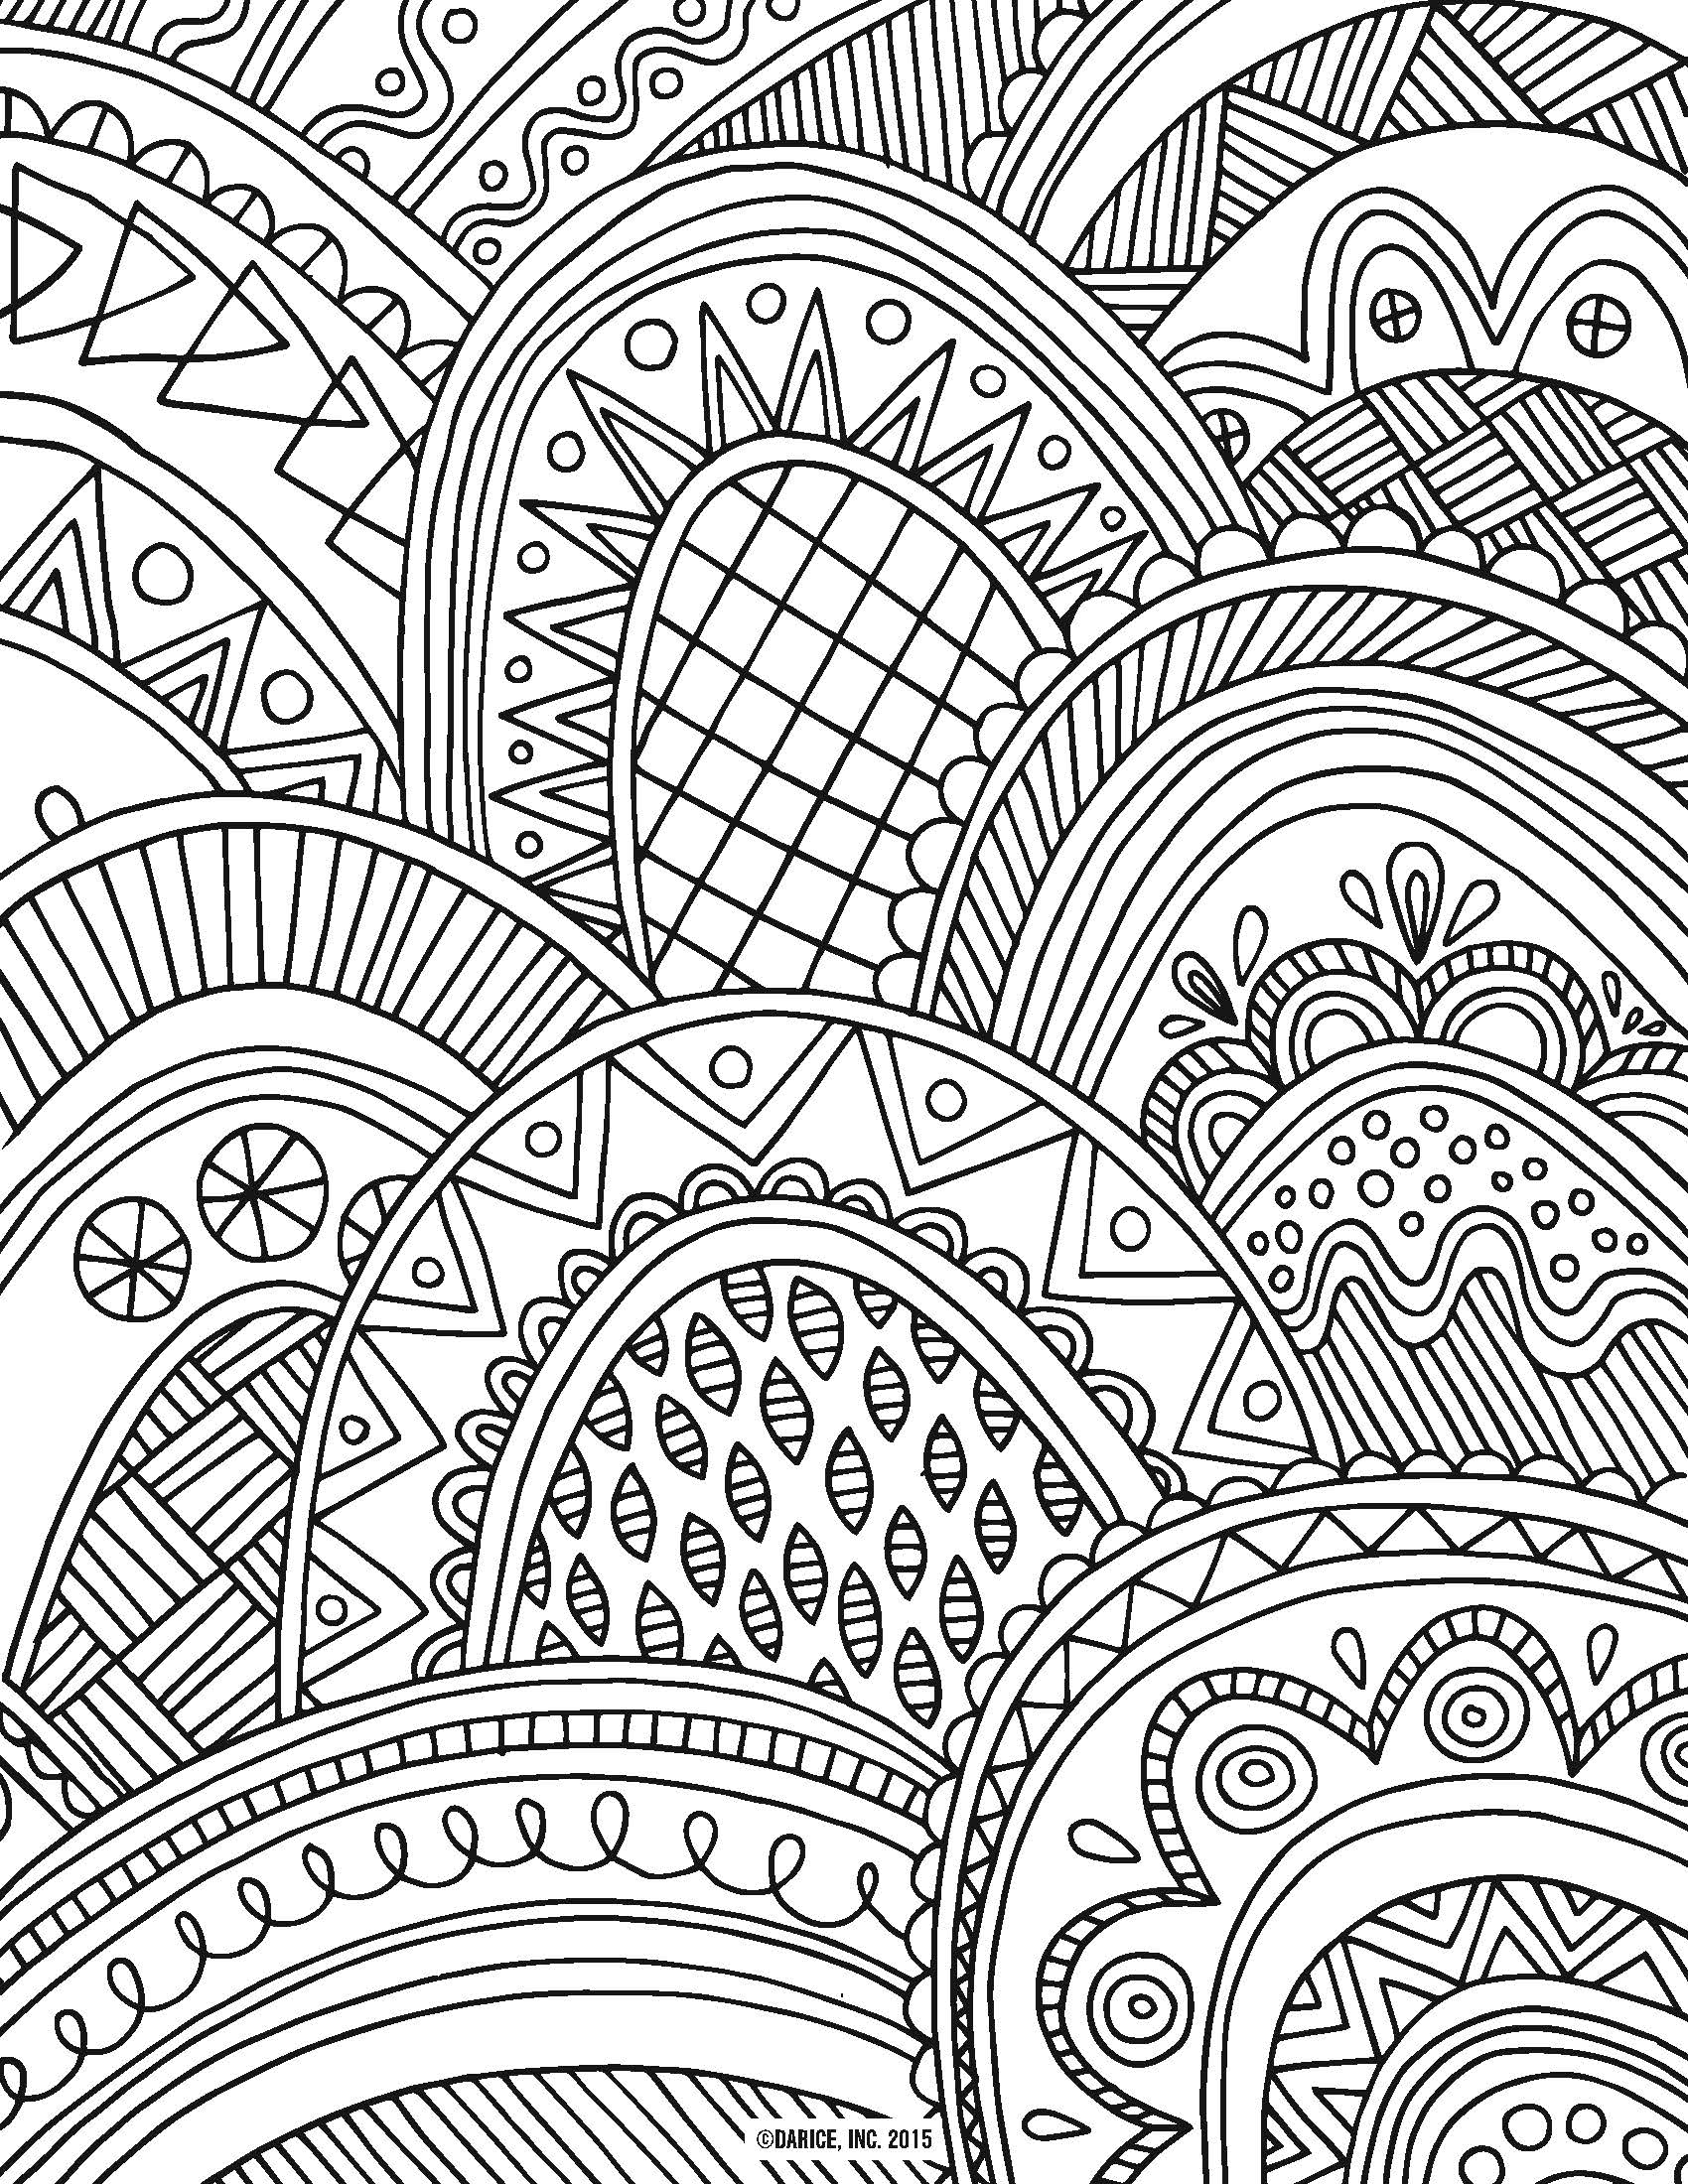 coloring pages for girls designs art therapy my fashion colouring book 100 designs for pages coloring girls for designs